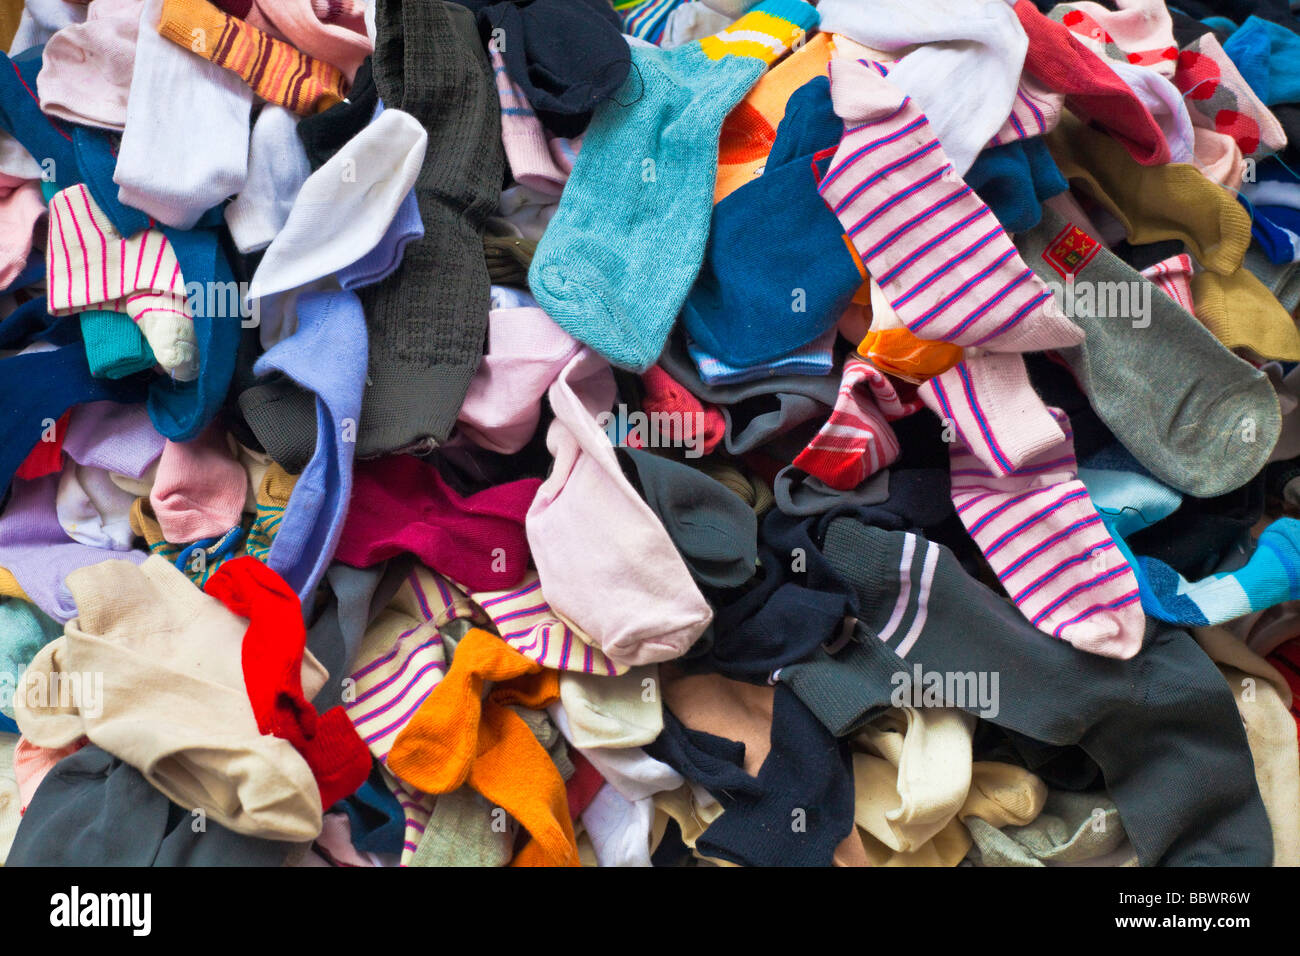 Piles of loose socks at a market, Darjeeling, India Stock ...